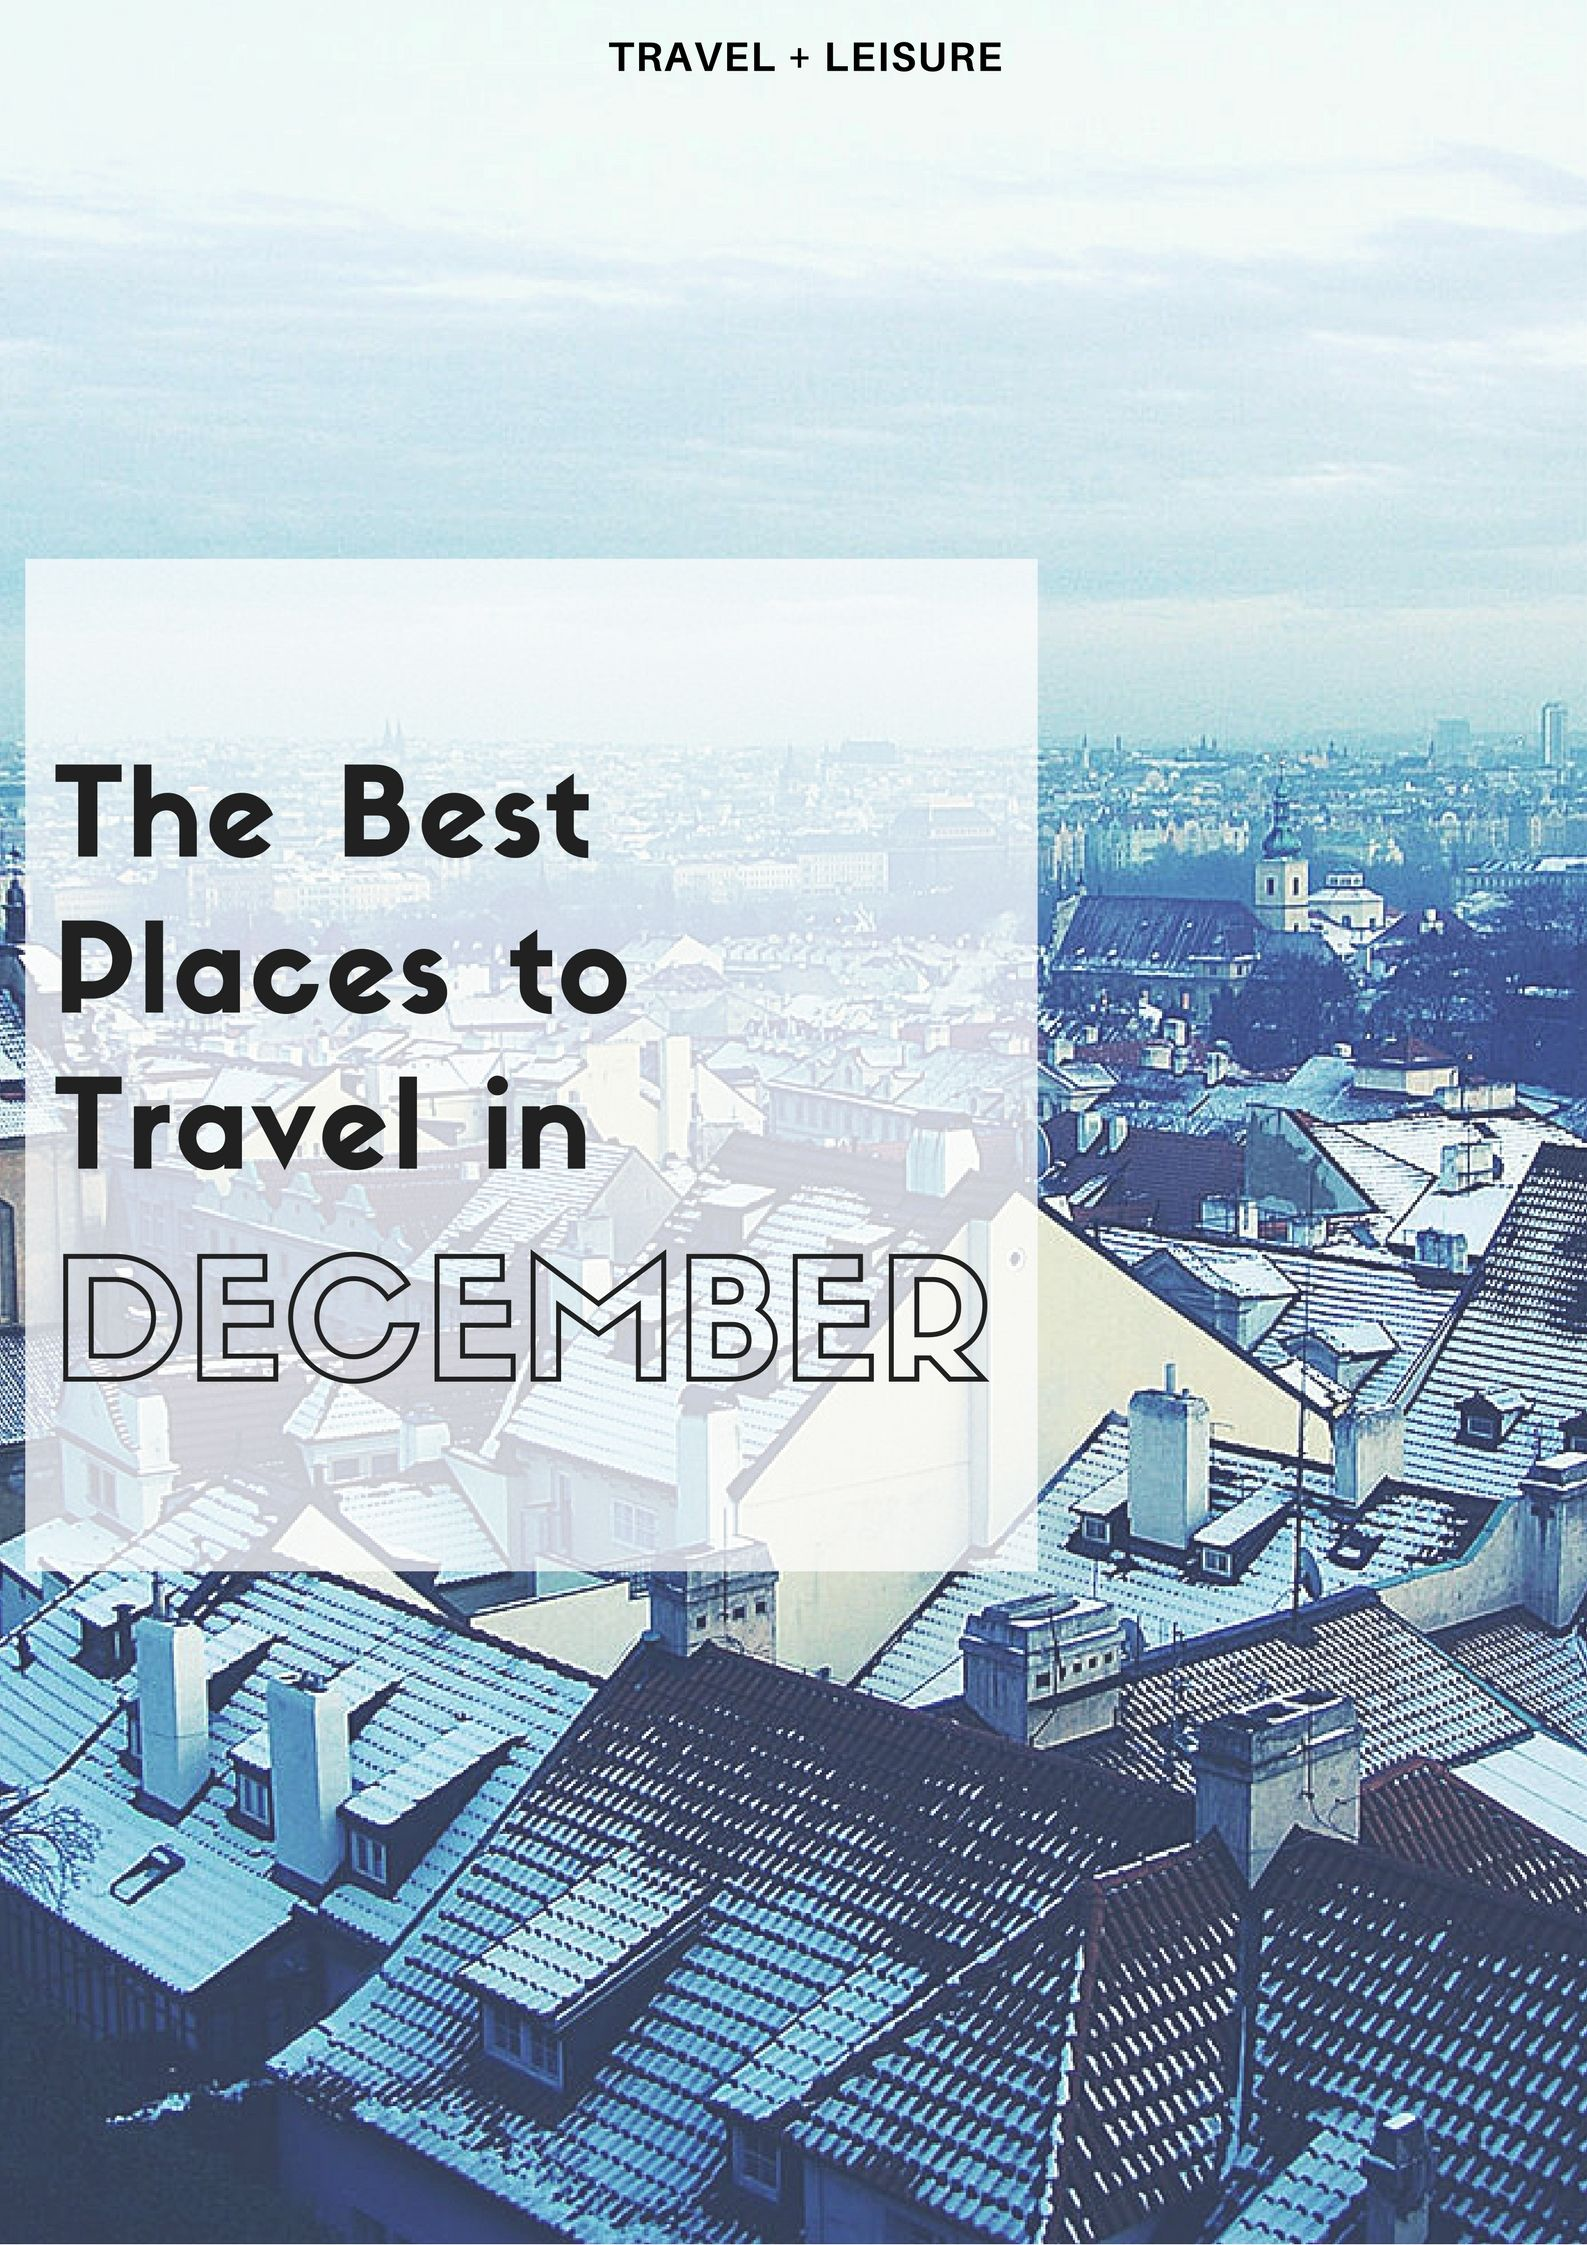 The best places to travel in december december for Travel destinations in december